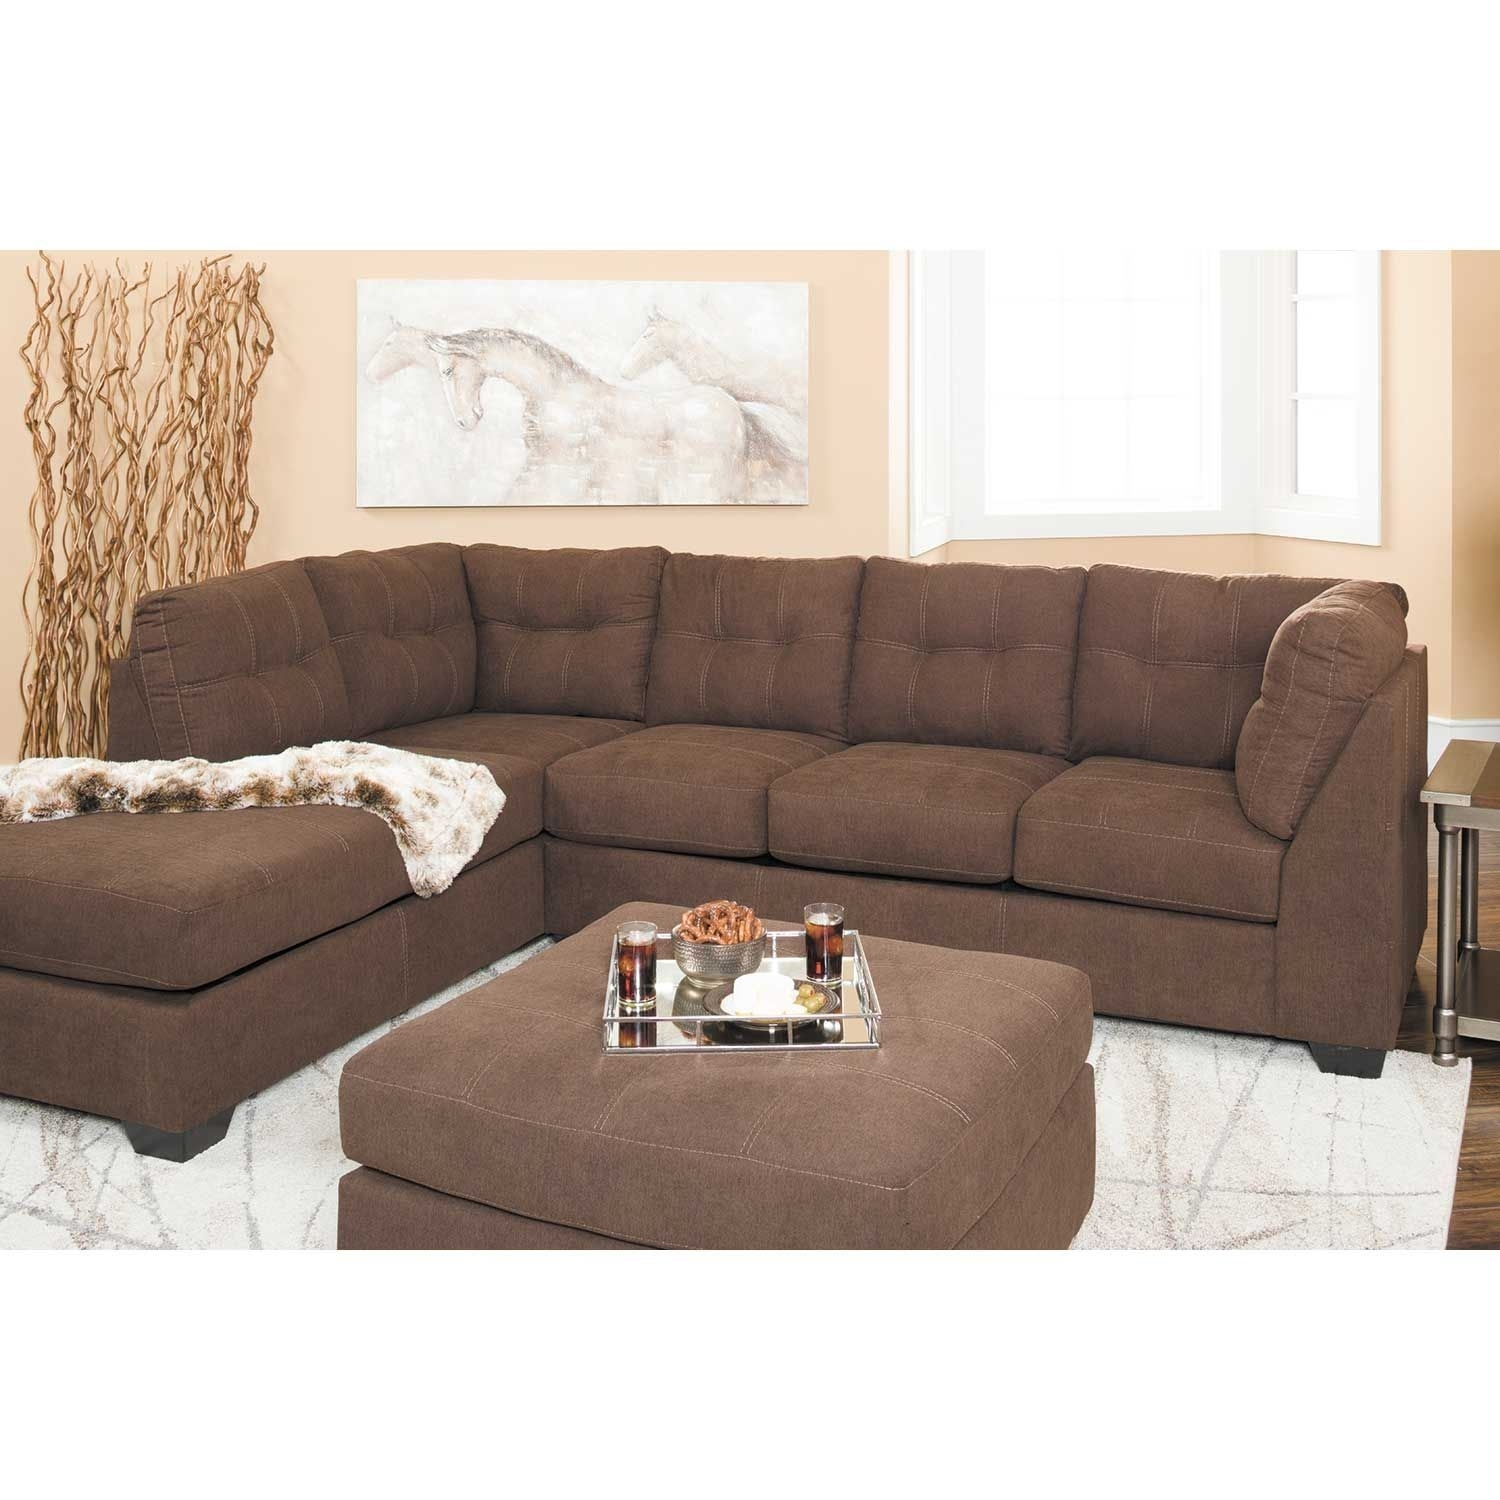 Maier Walnut 2 Piece Sectional With Laf Chaise | 4520116/67 | Ashley intended for Arrowmask 2 Piece Sectionals With Sleeper & Right Facing Chaise (Image 19 of 30)